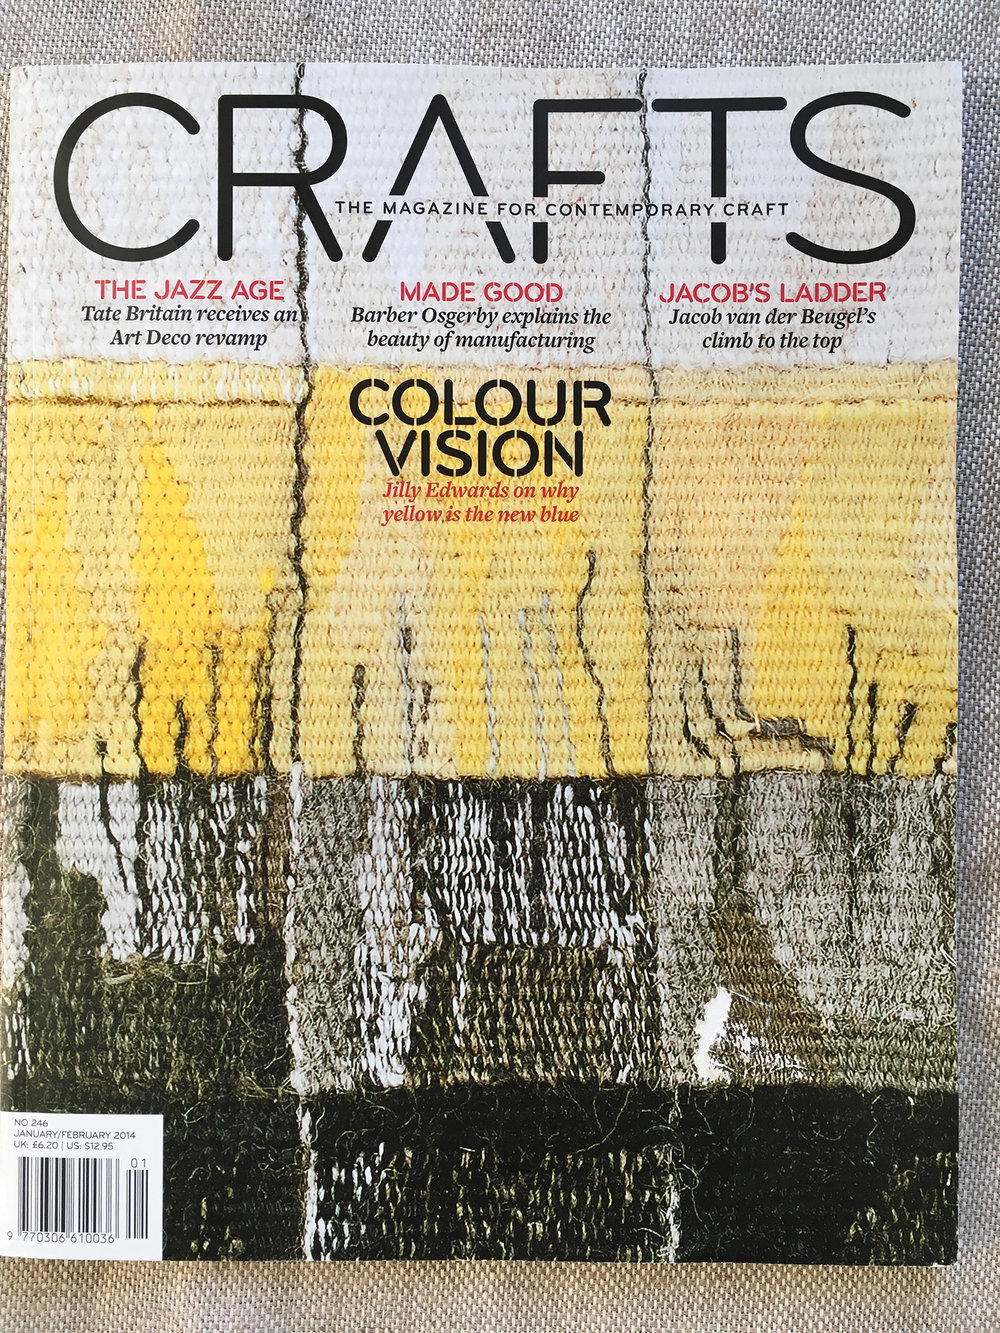 >> Crafts Magazine 2014